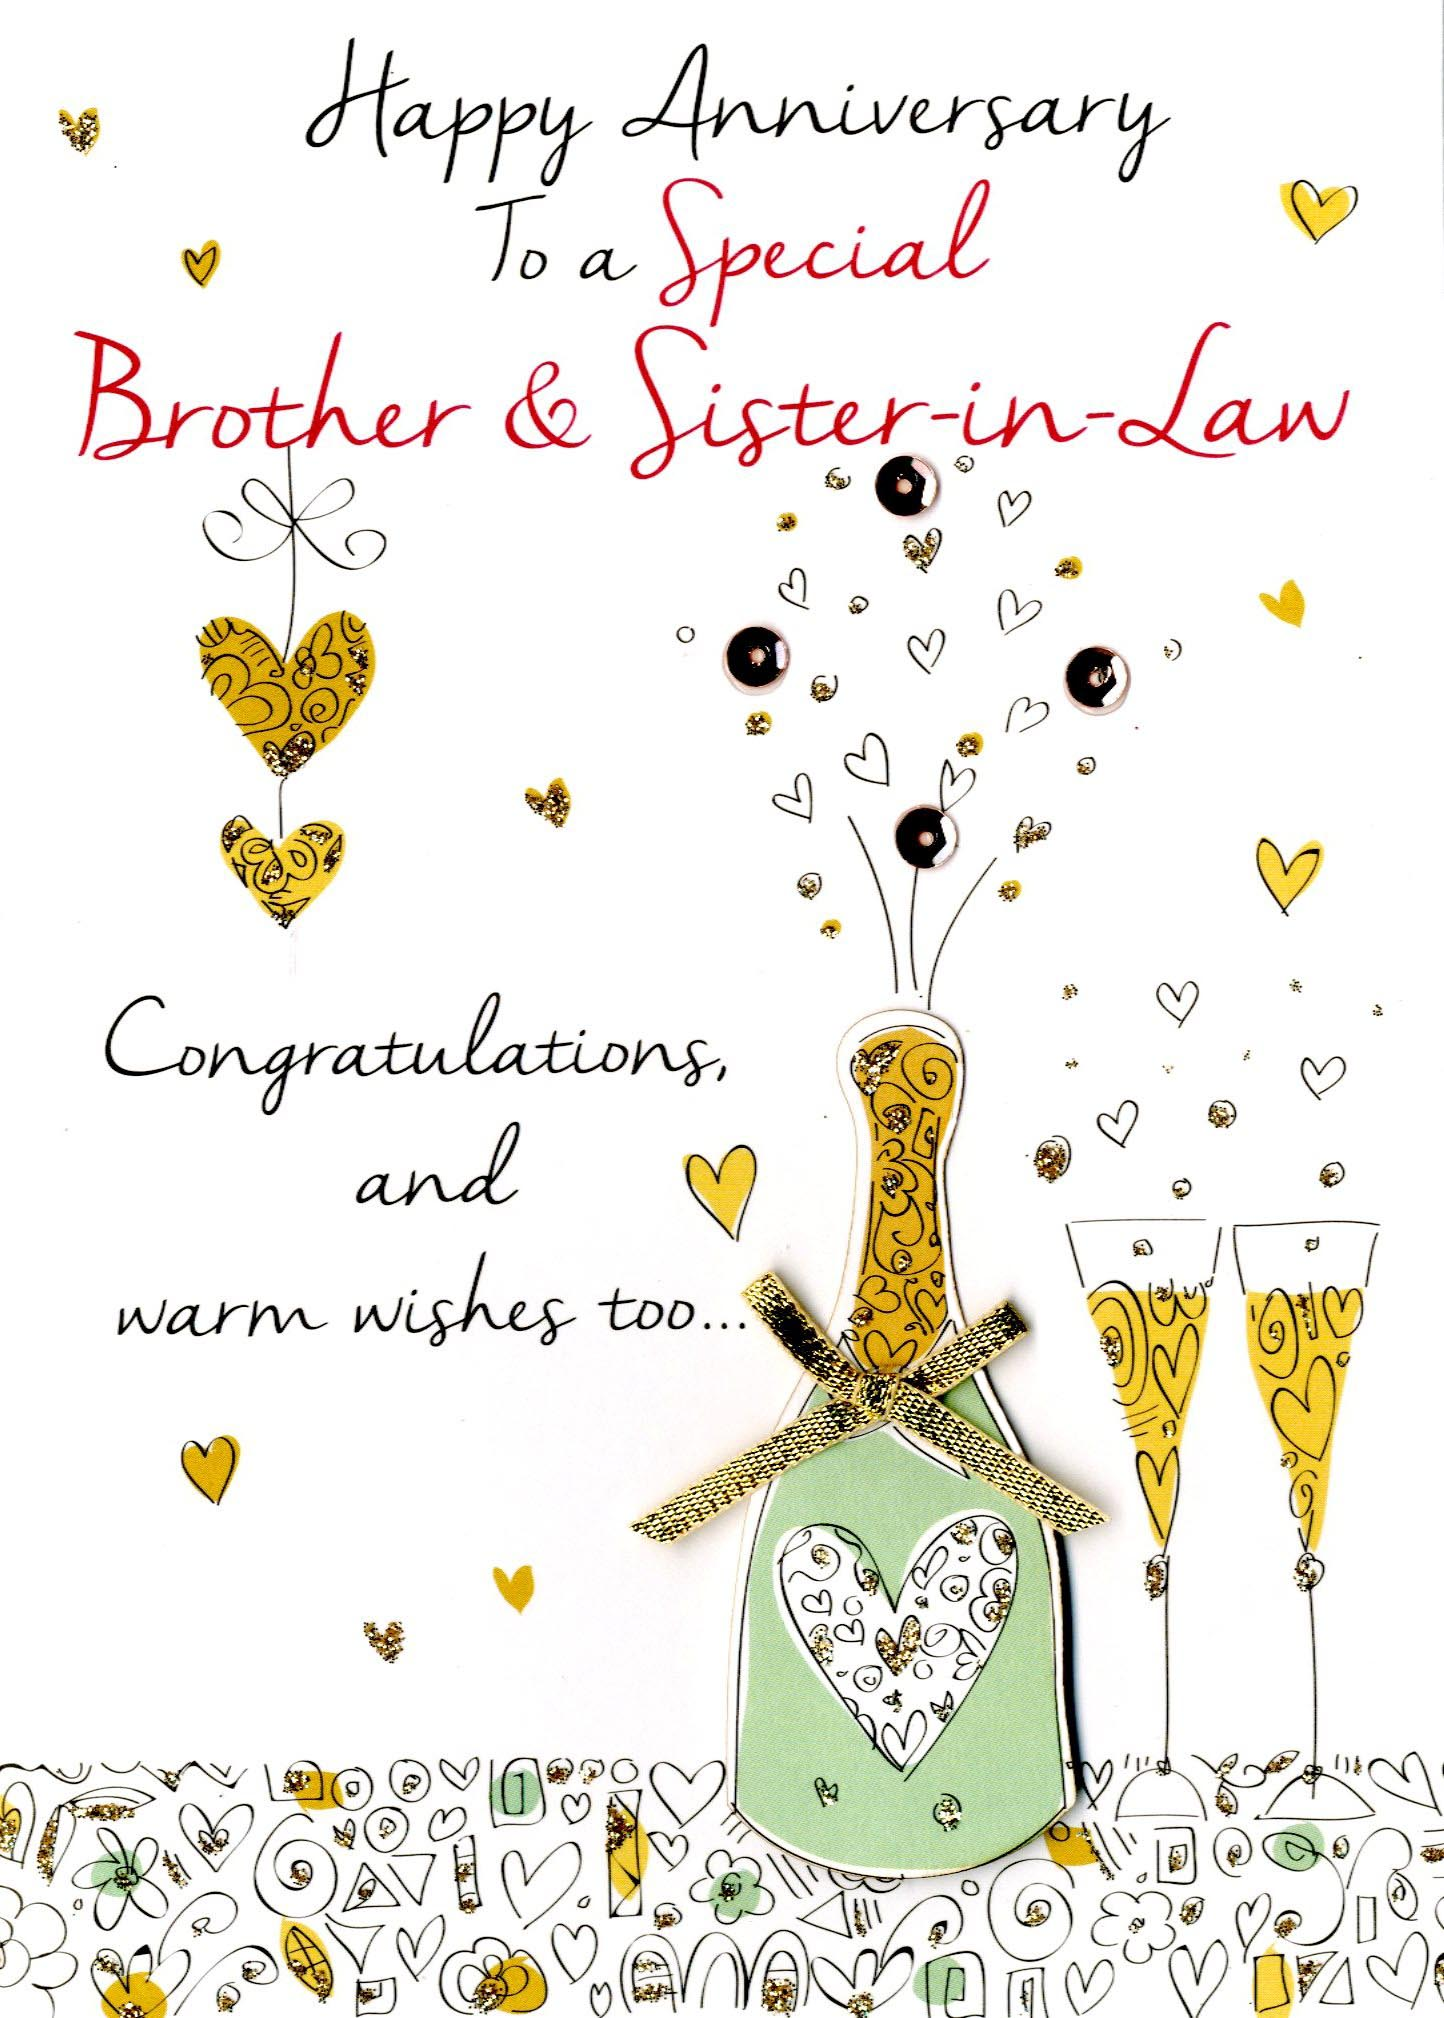 Brother & Sister-In-Law Anniversary Greeting Card | Cards | Love Kates